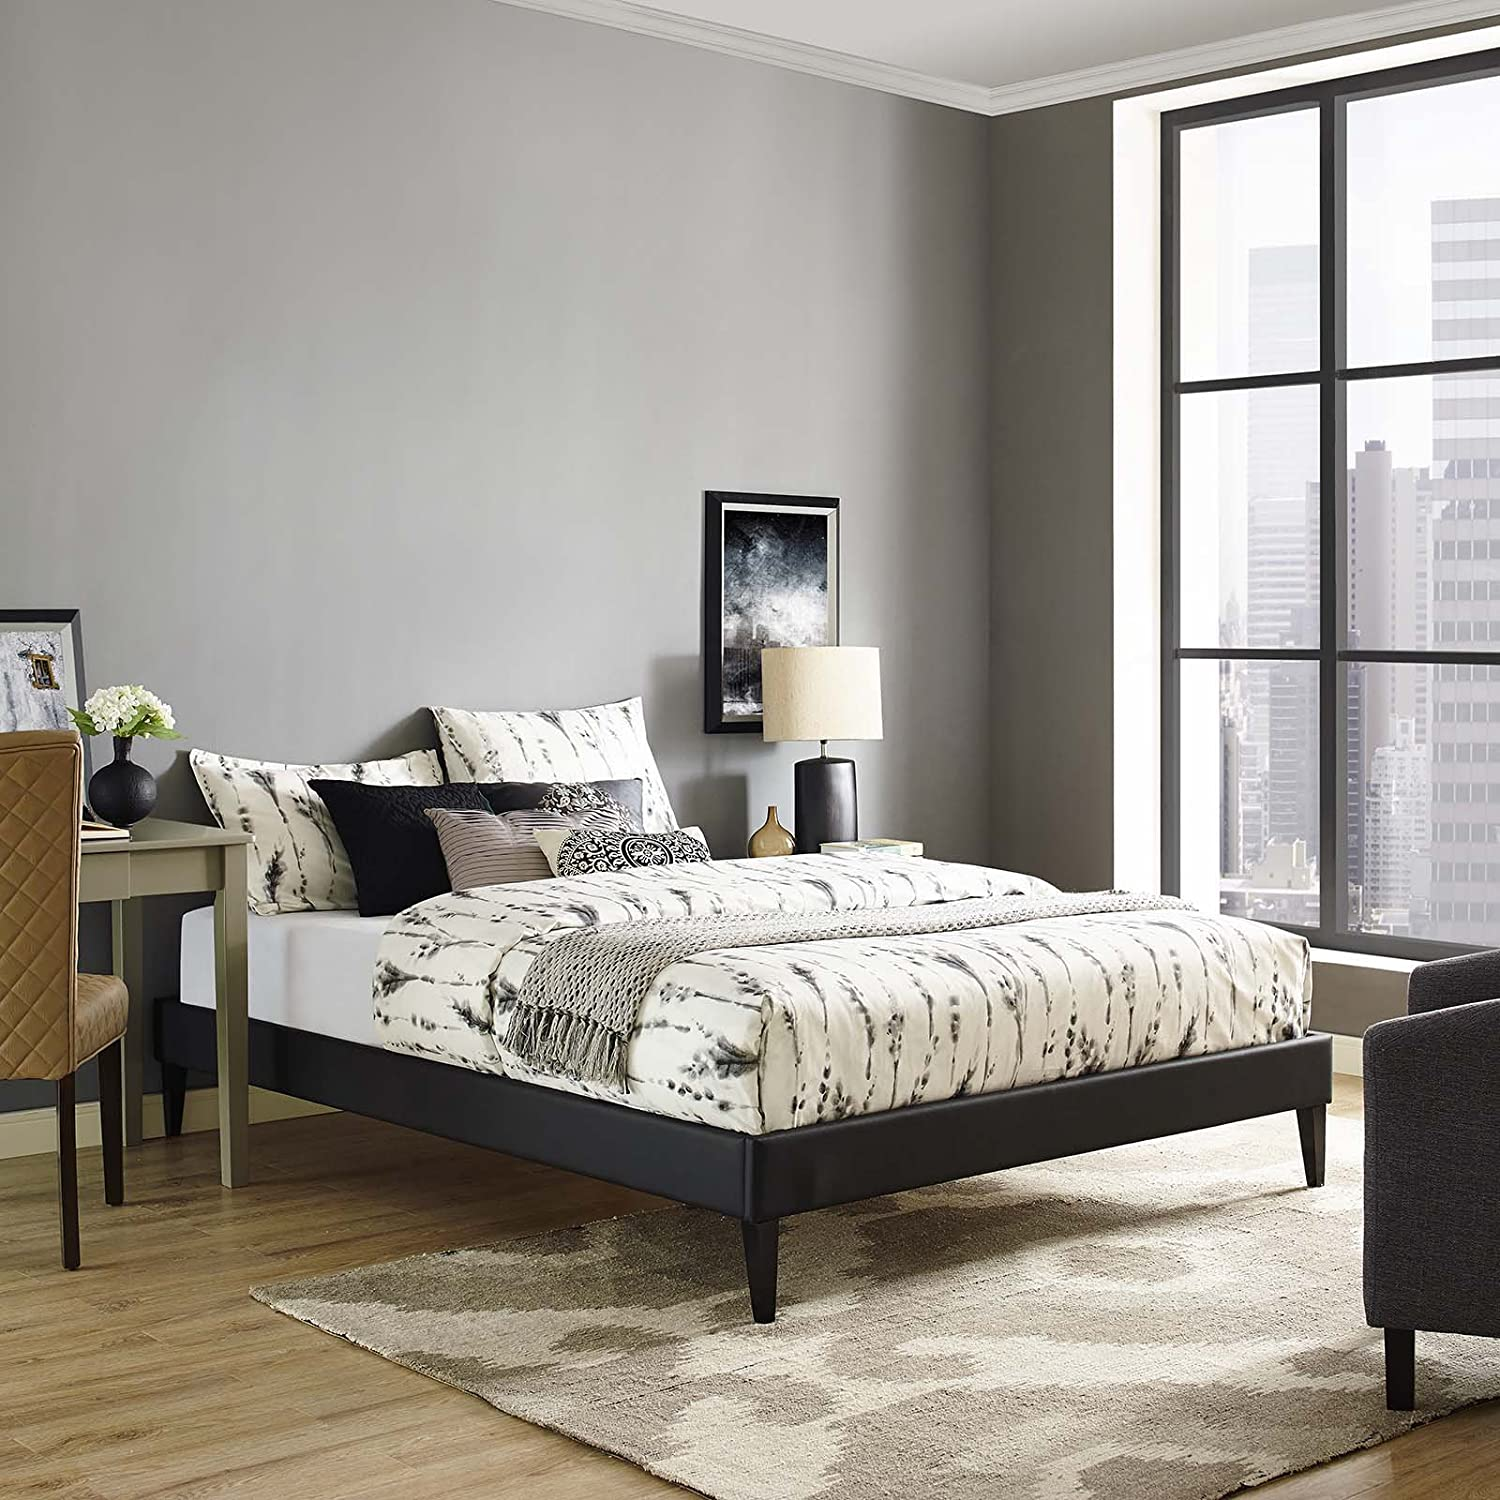 Modway Tessie Faux Leather King Platform Bed Frame with Wood Slat Support in Black